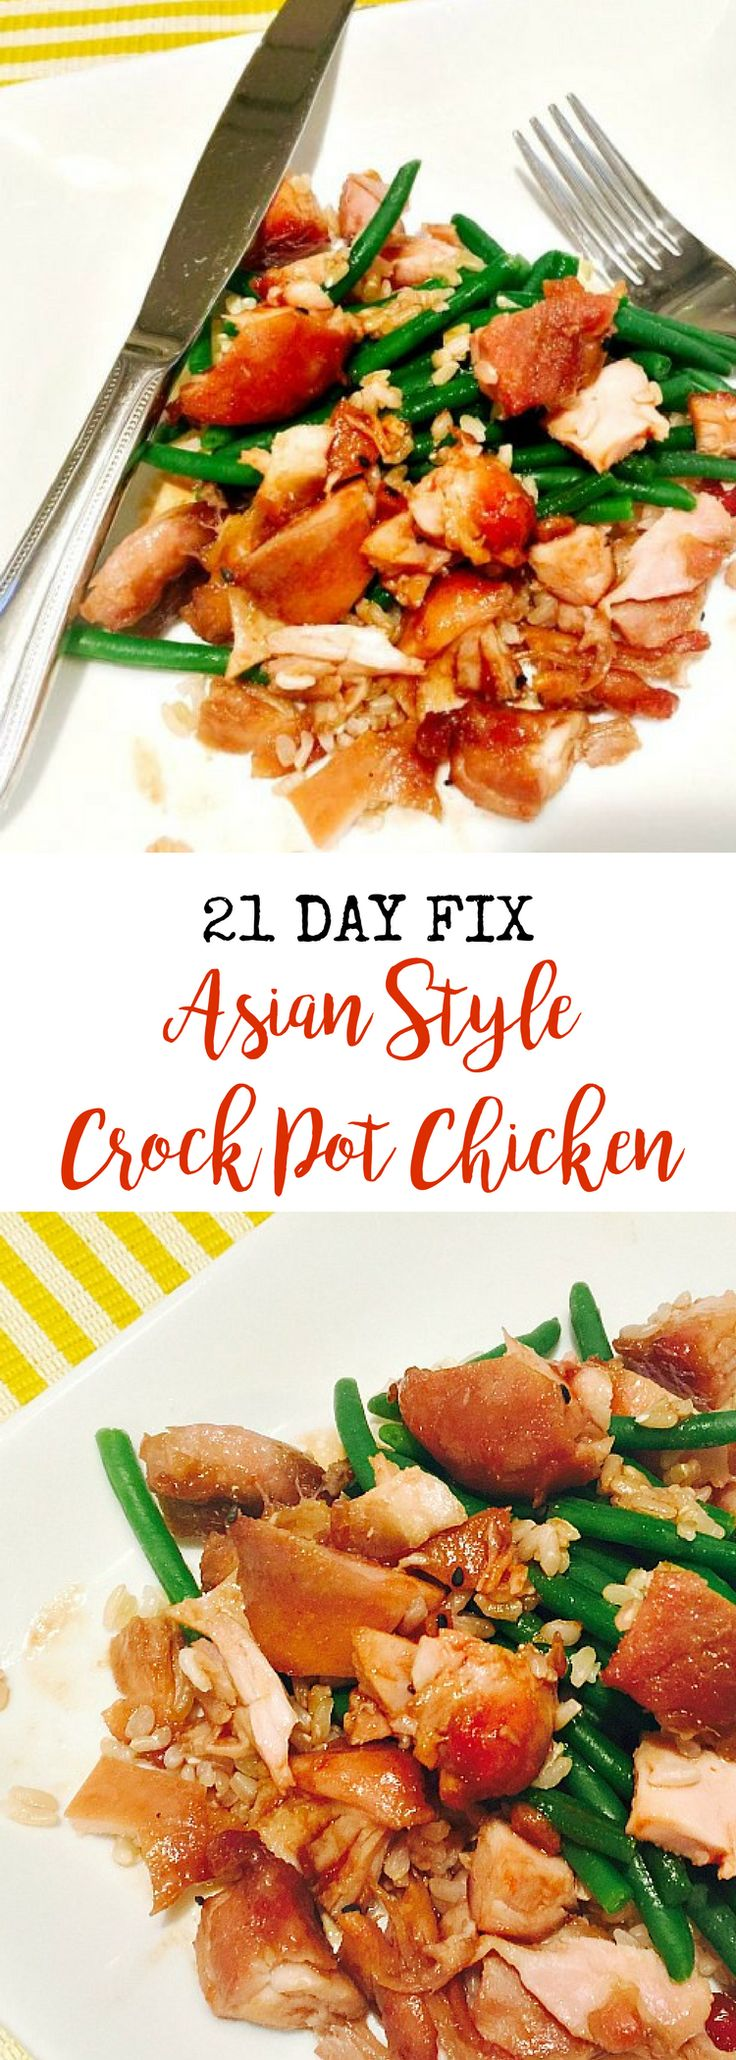 21 Day Fix Asian Style Crock Pot Chicken | Confessions of a Fit Foodie